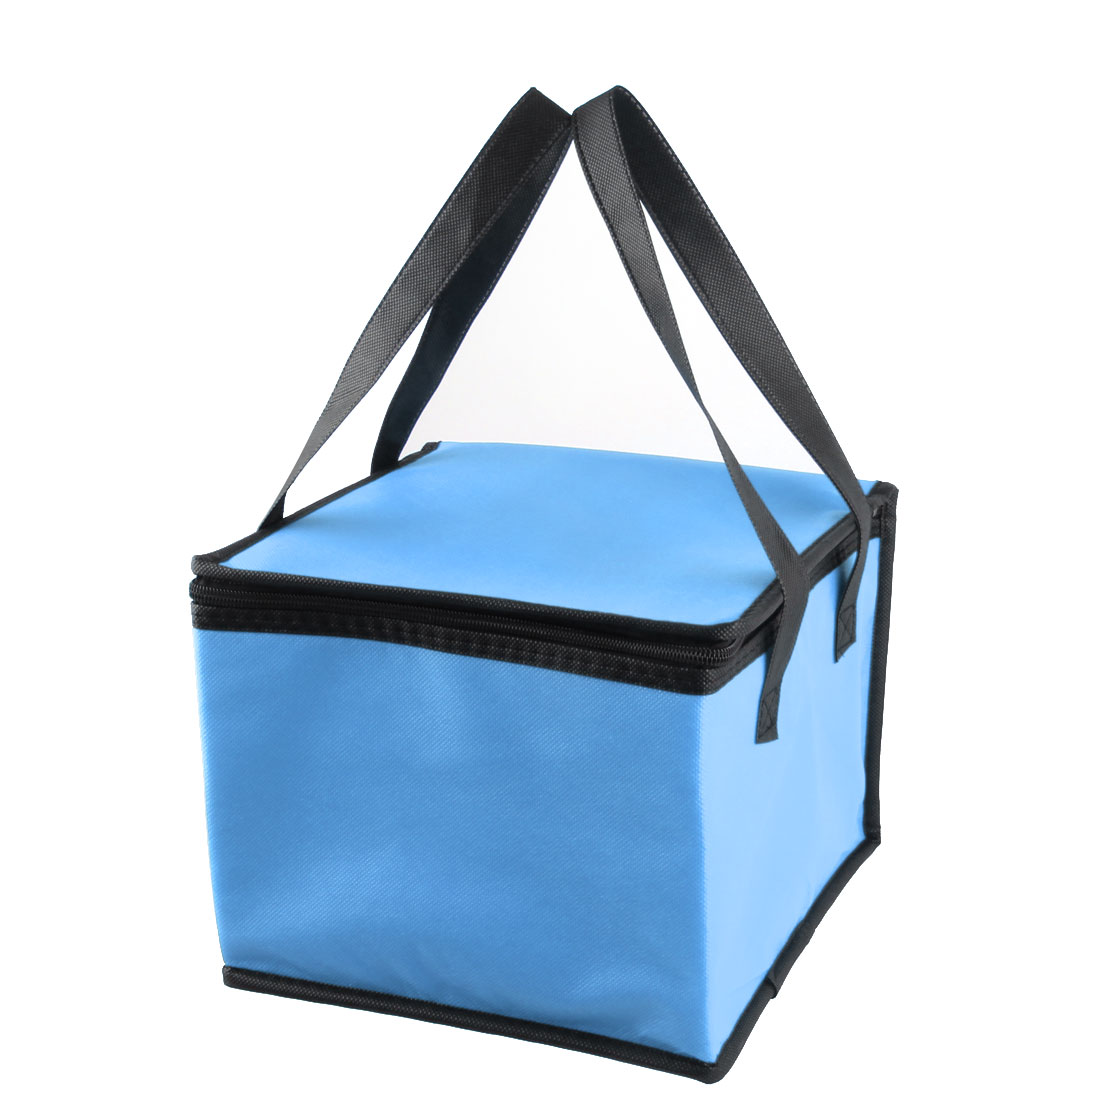 Travel Square Shaped Zippered Food Drink Holder Handle Cooler Lunch Picnic Bag